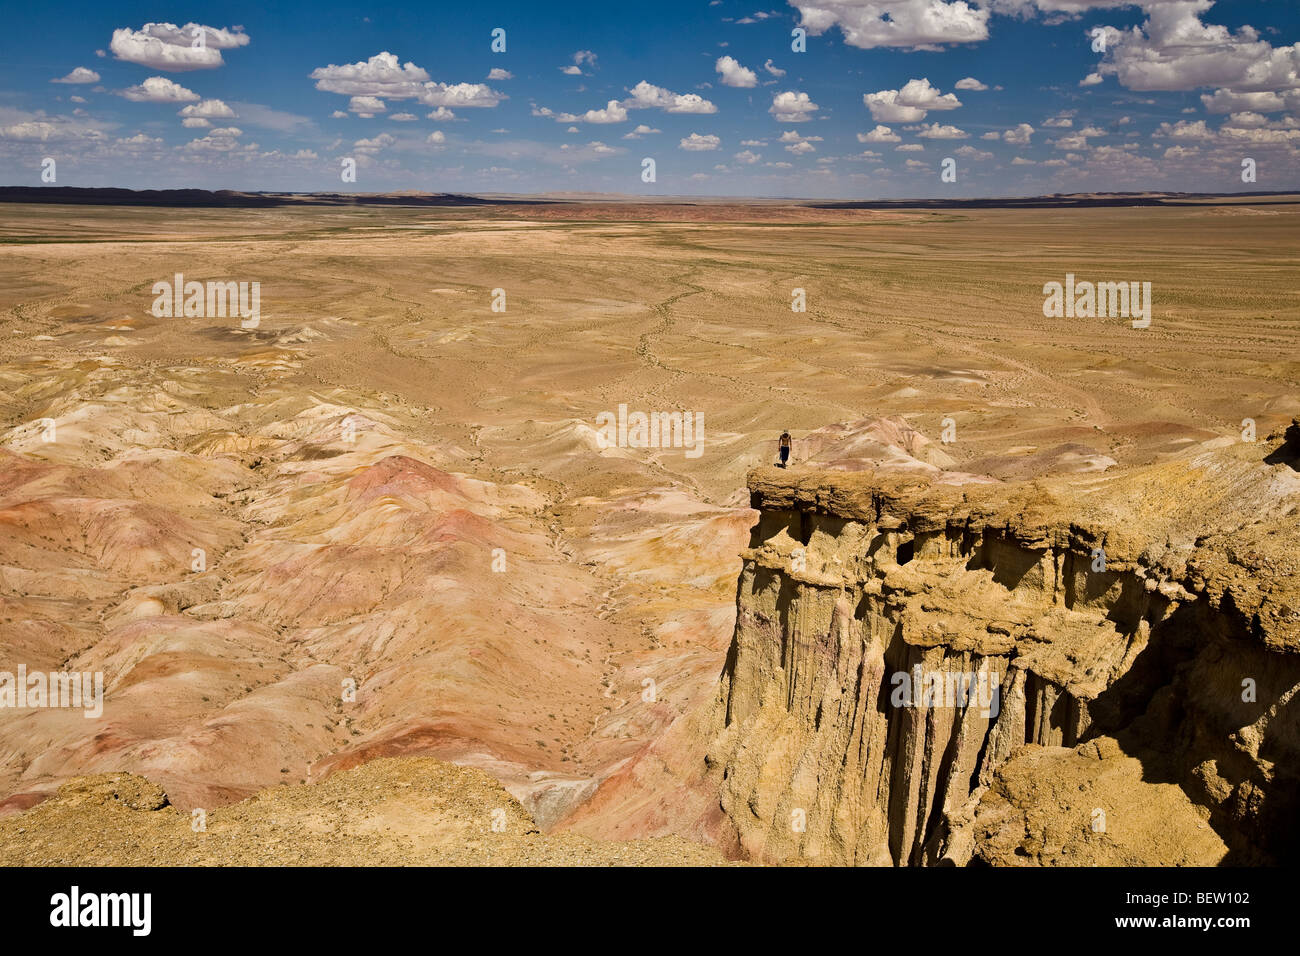 Man standing on edge of a high cliff overlooking the Gobi desert Mongolia - Stock Image